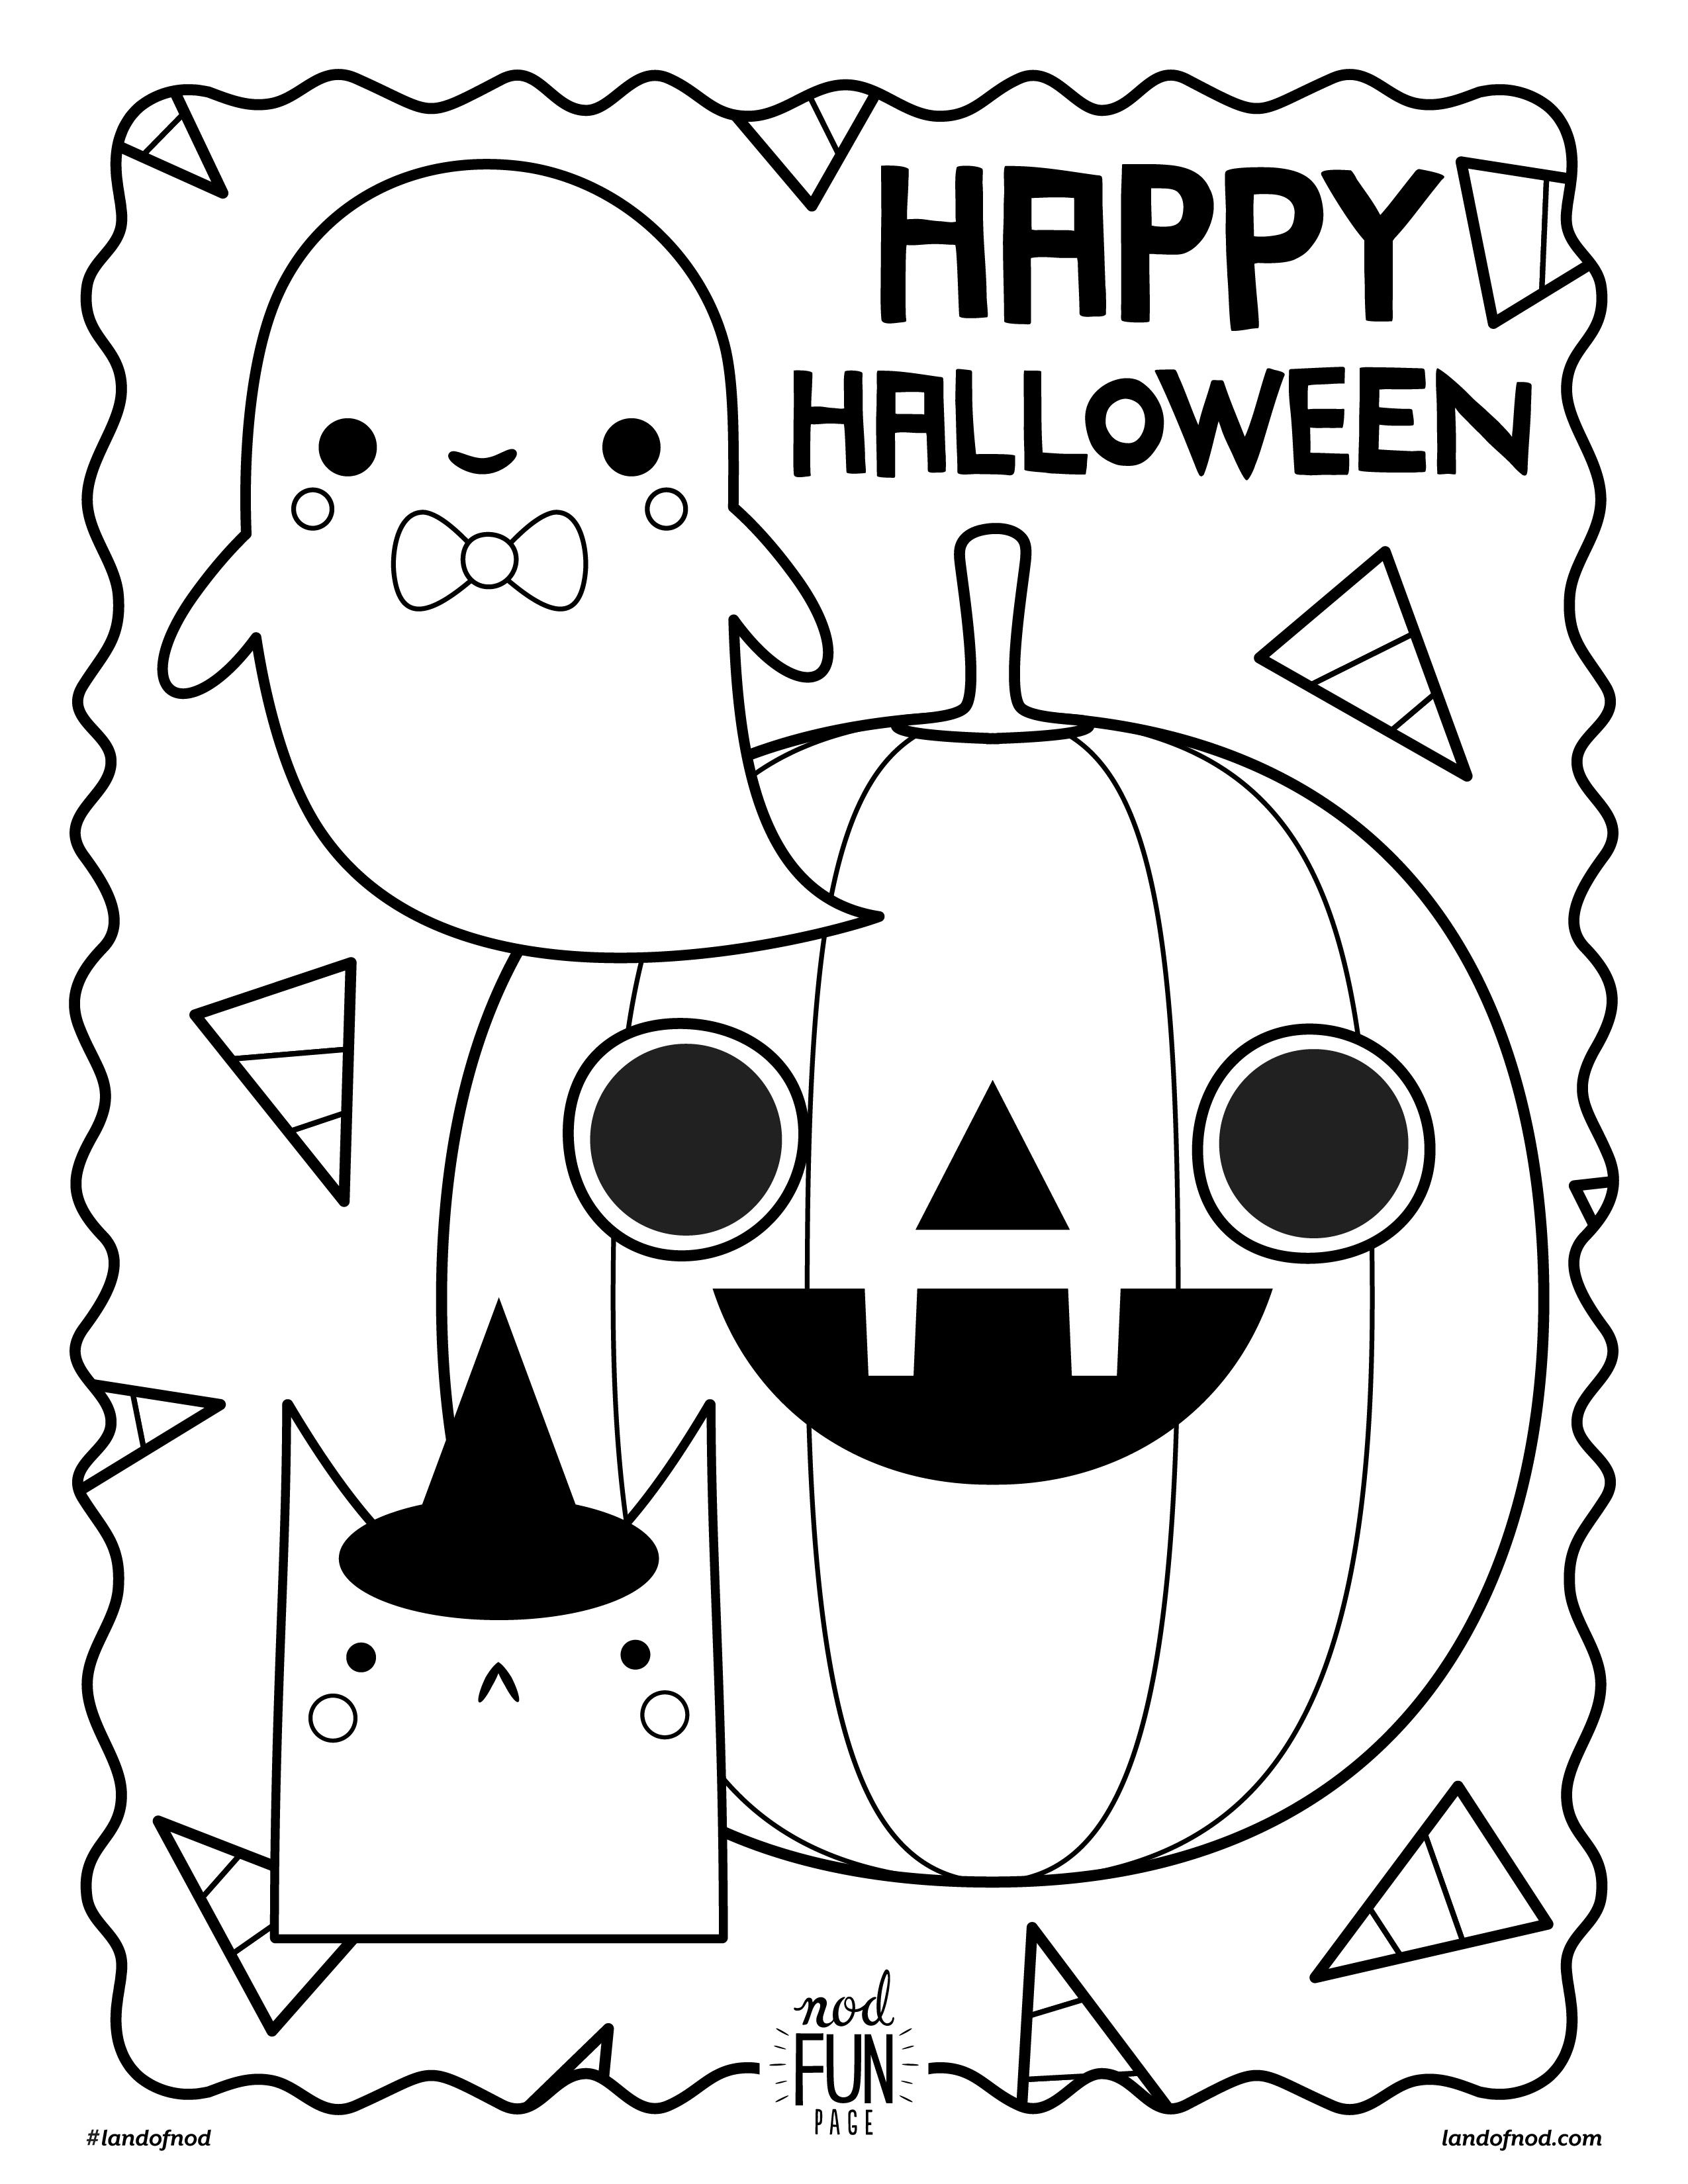 Free Printable Halloween Coloring Page Crate Kids Blog Halloween Coloring Pages Halloween Coloring Pages Printable Cute Coloring Pages